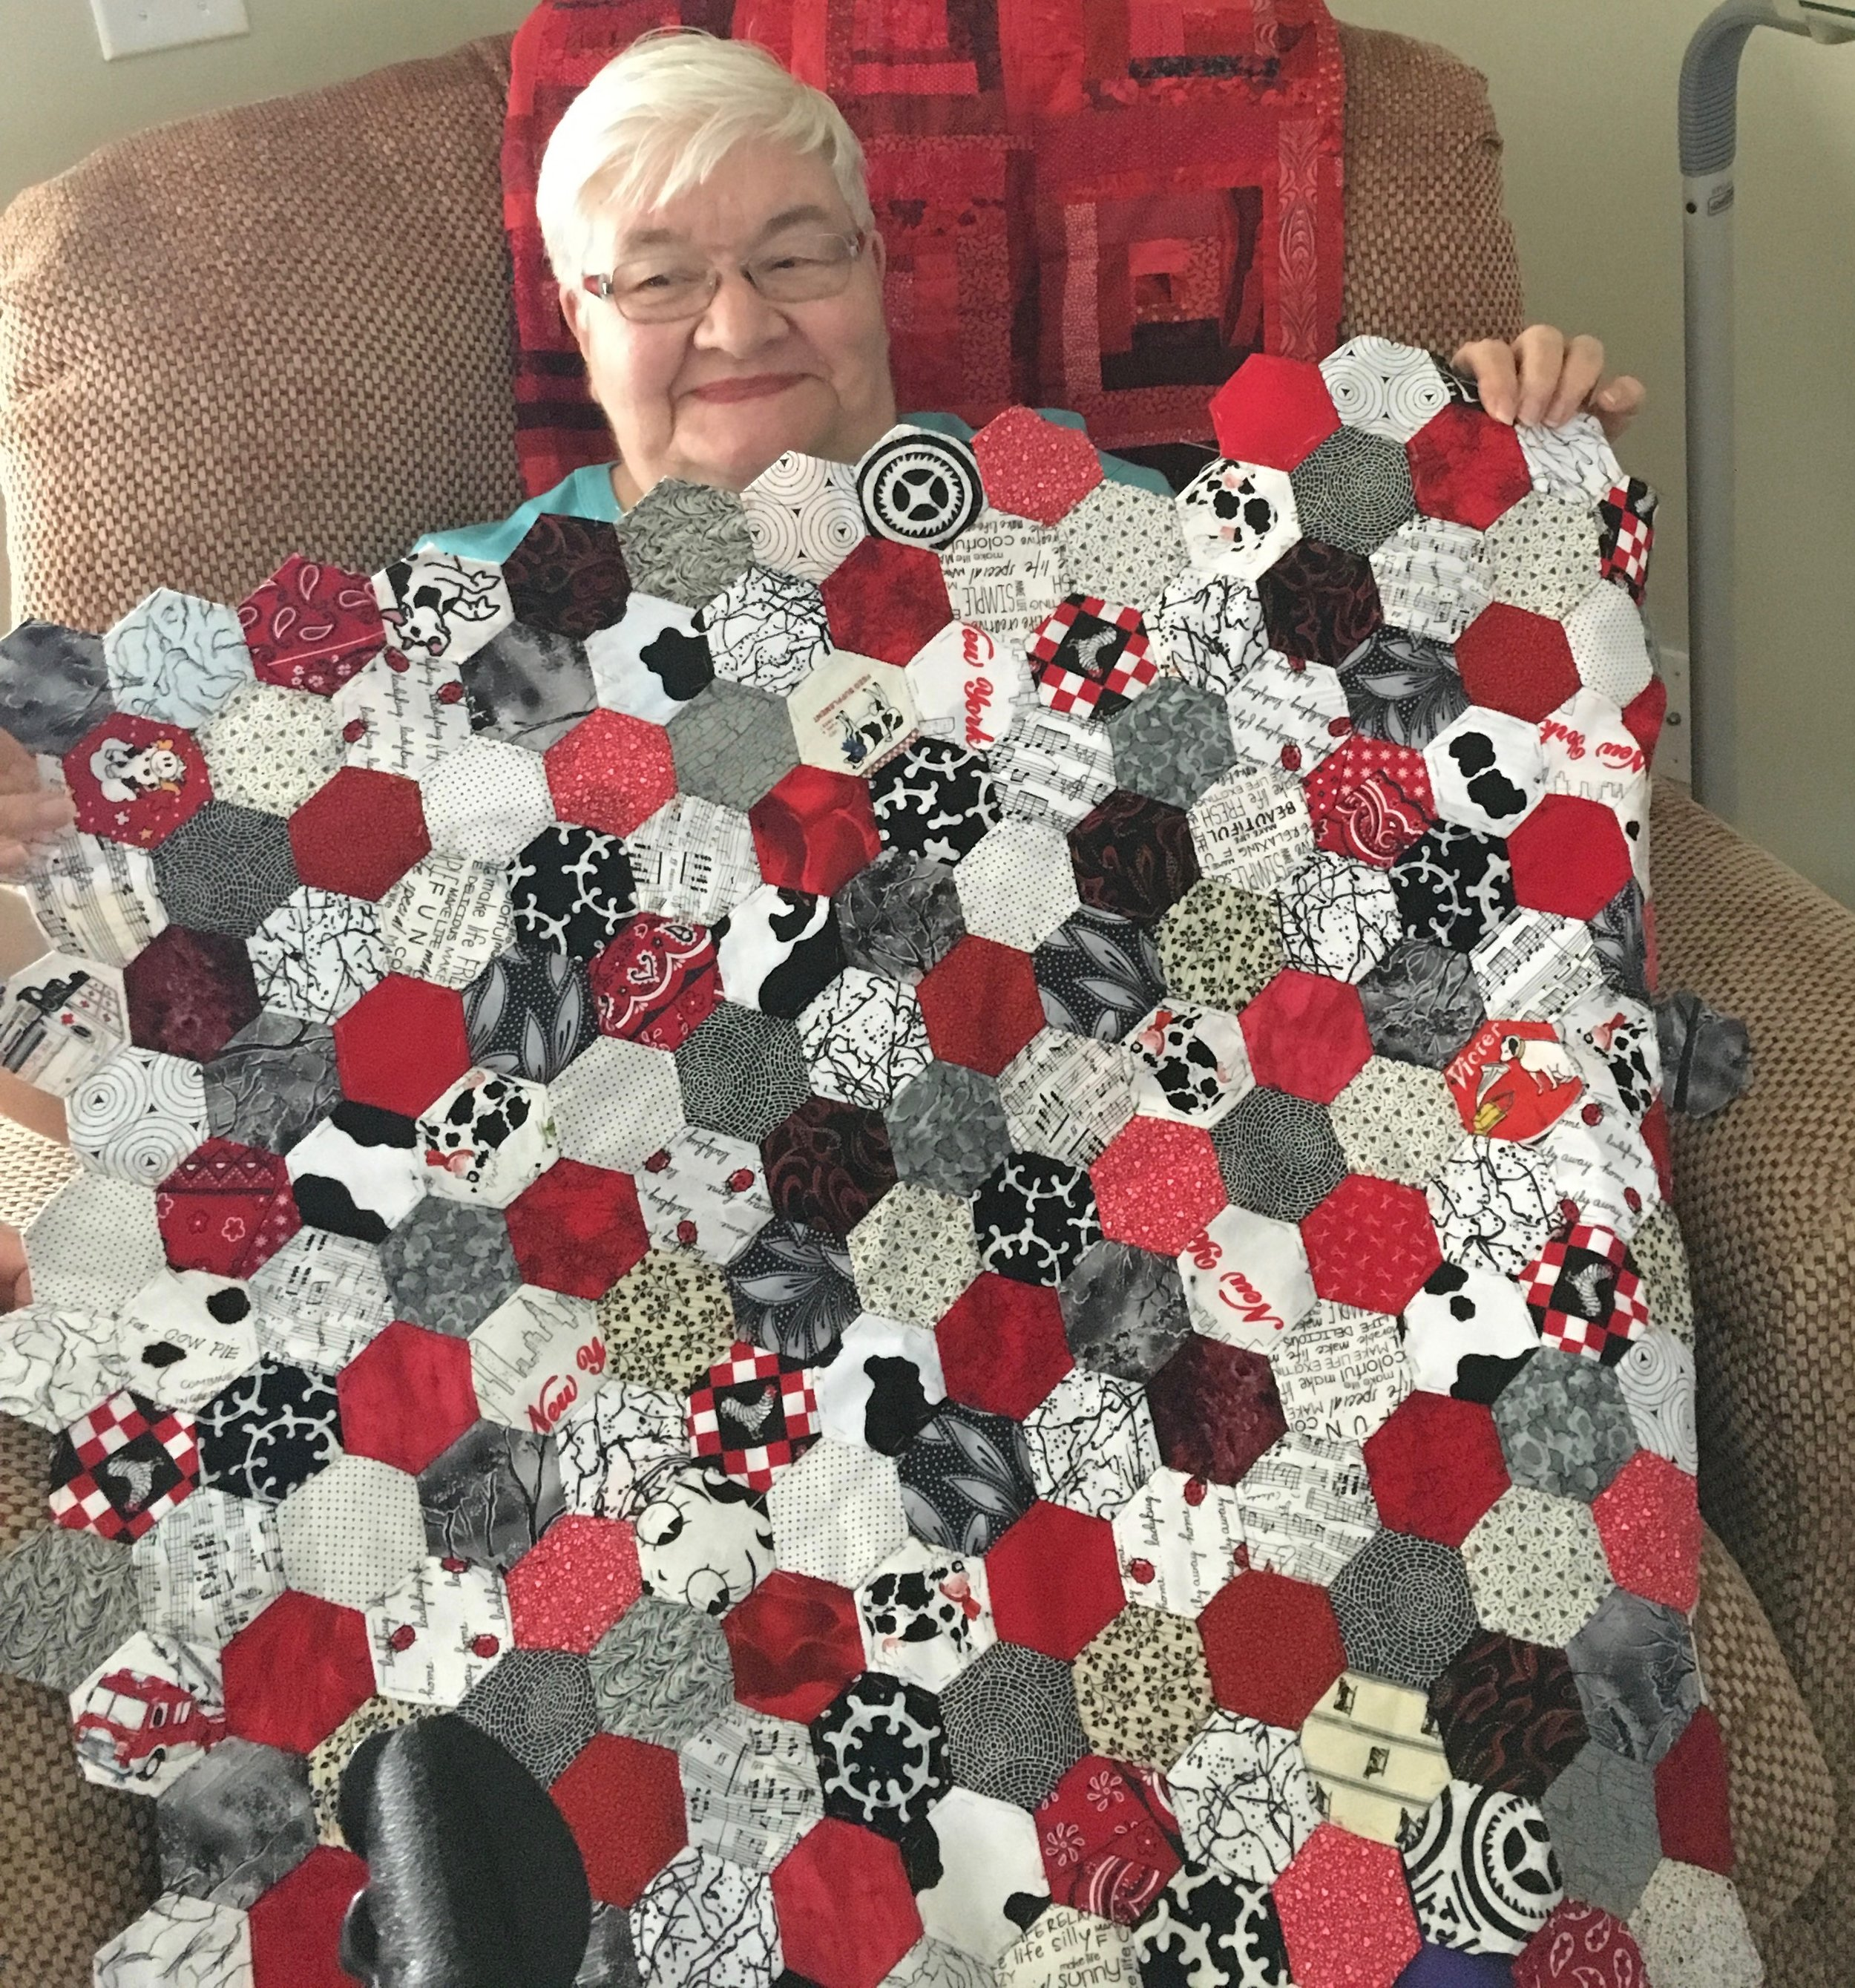 We have lost track of how many hexagon quilts Mary has made but she is hot on another one. She is amazing and will always go down in my history book as the creative lady who named my  Grid Grip.